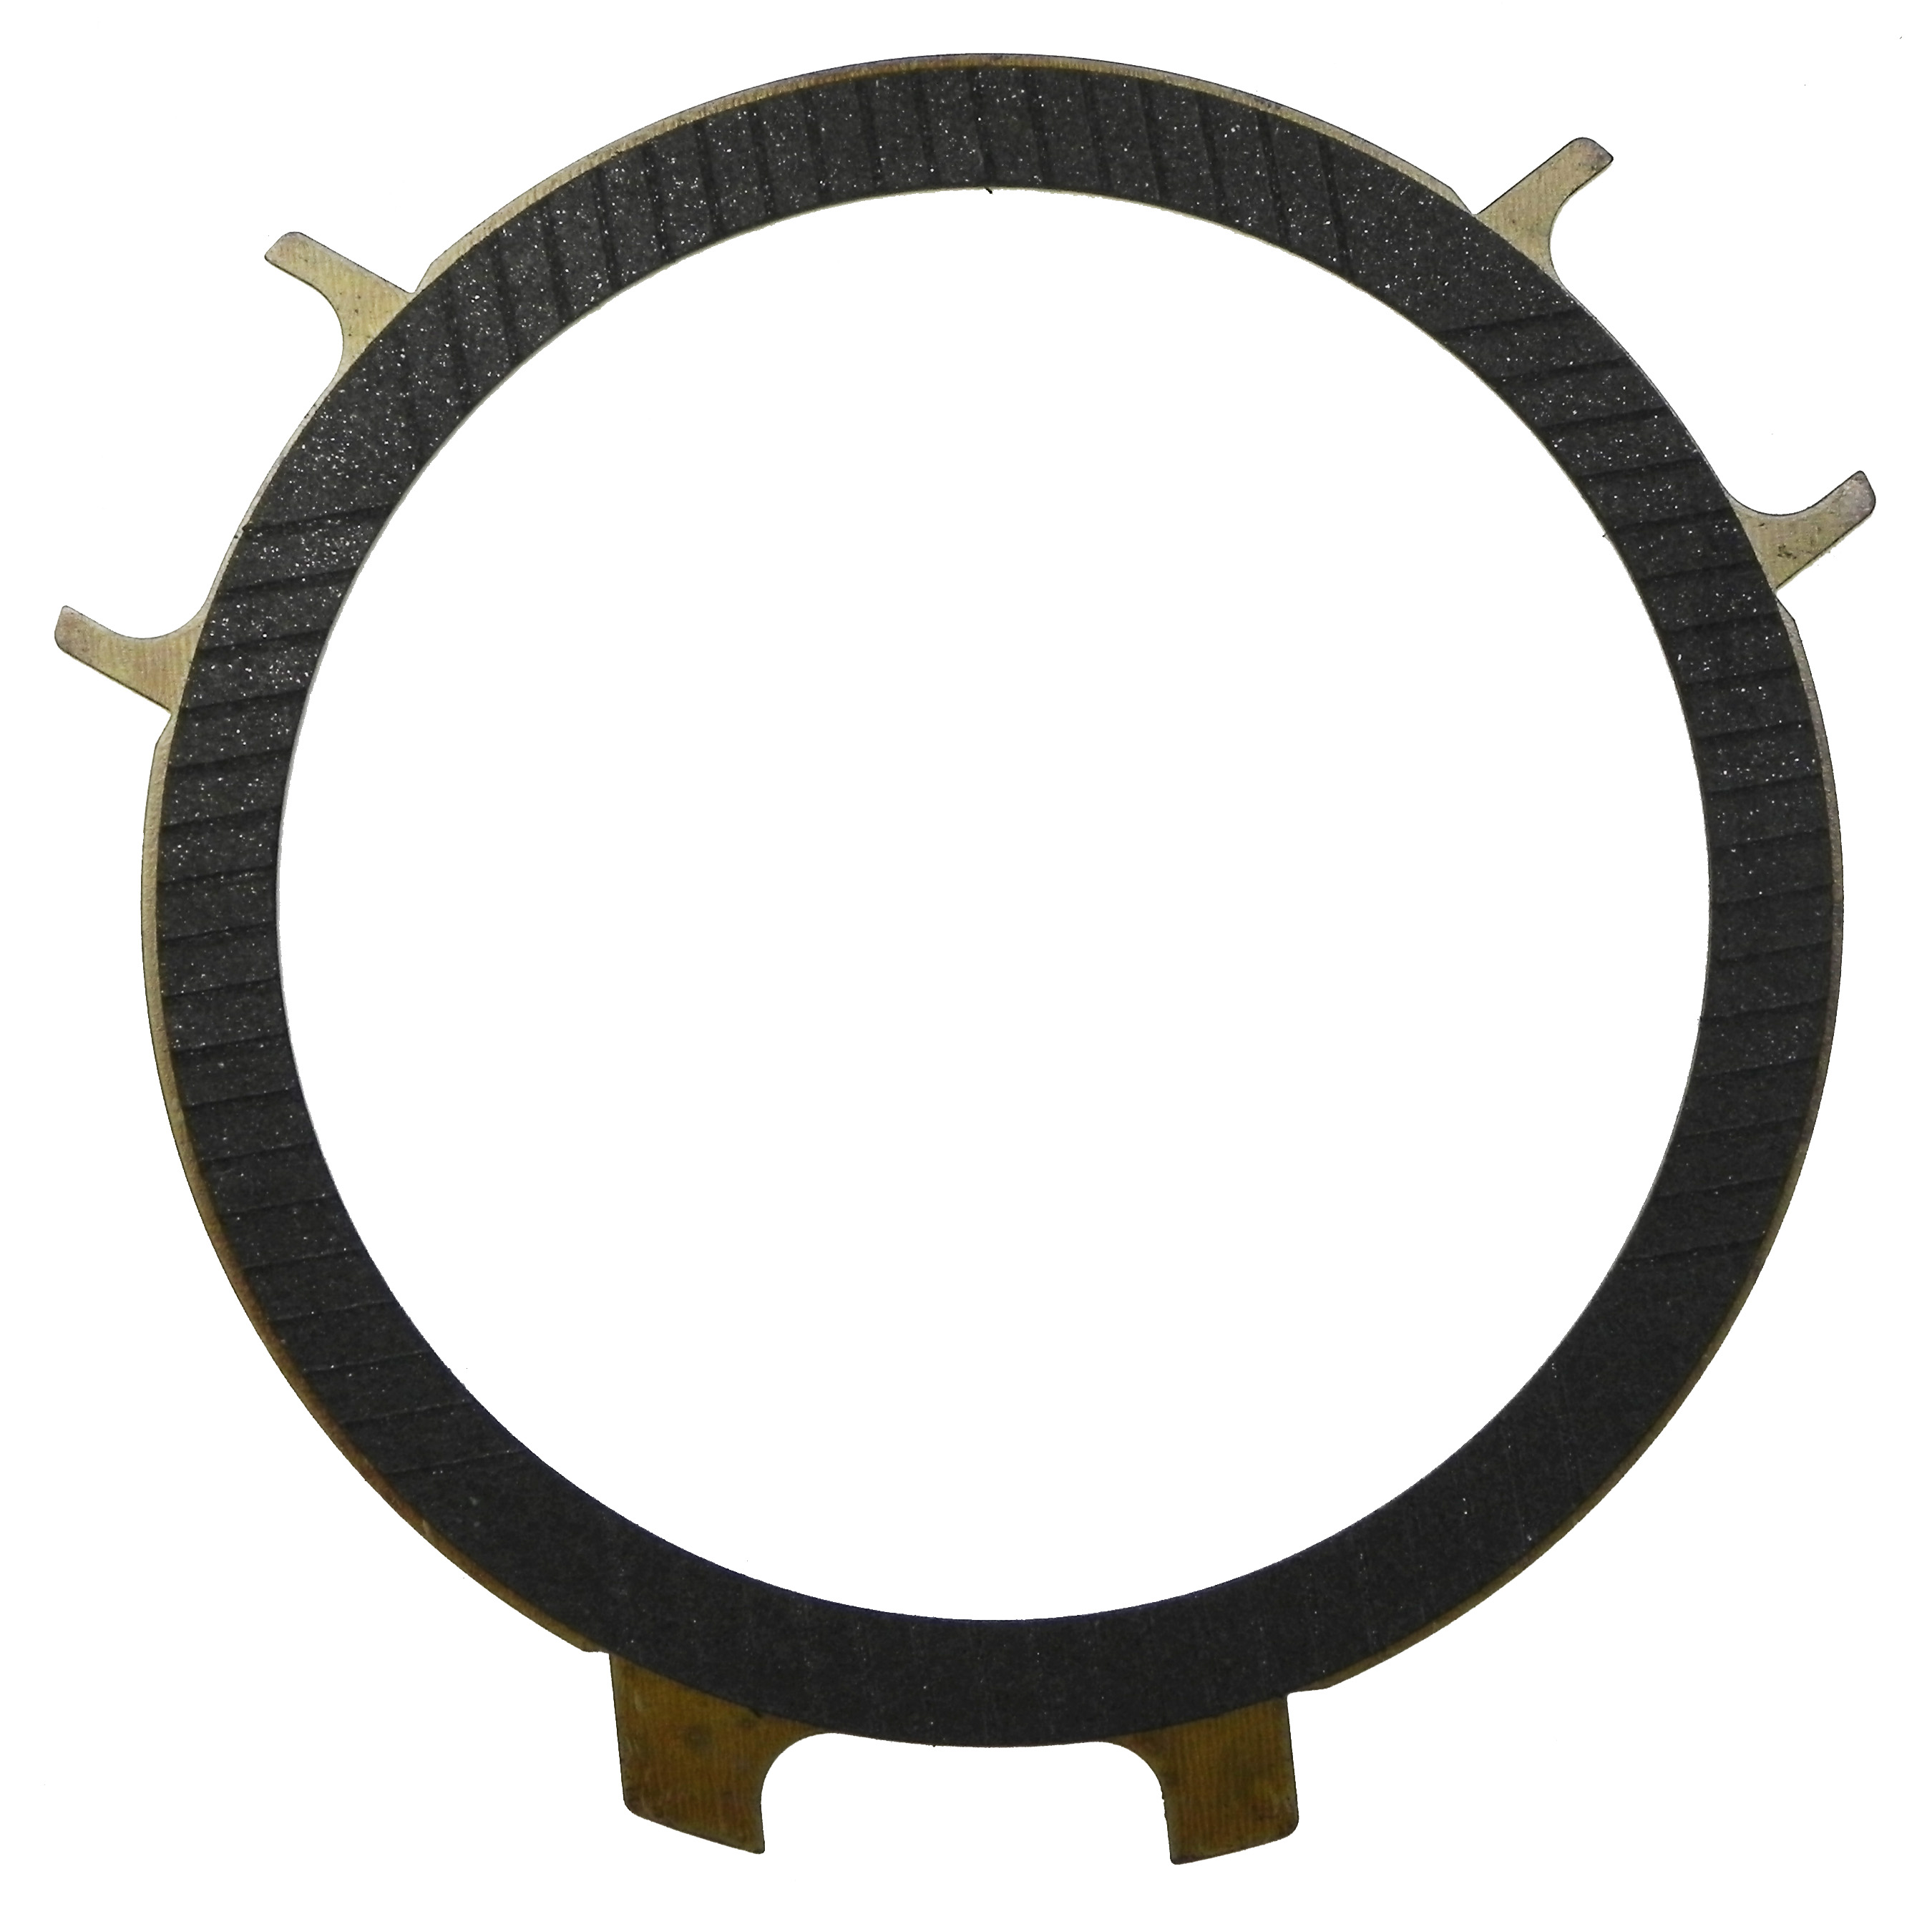 R558160 | 1998-ON Friction Clutch Plate High Energy Intermediate Single Sided, OD Spline High Energy